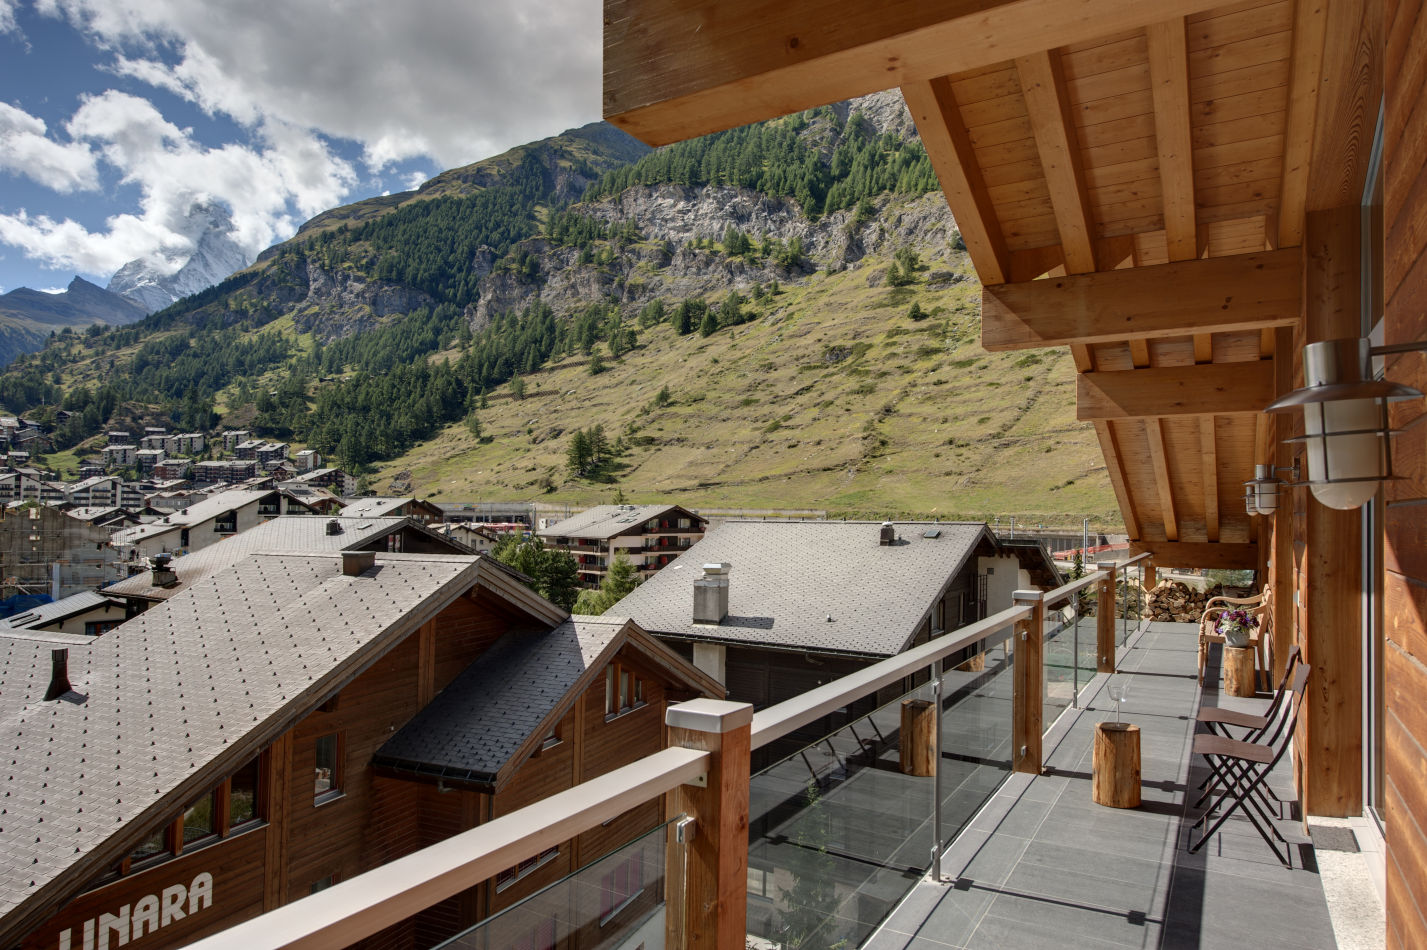 zermatt-lodge-2013-014